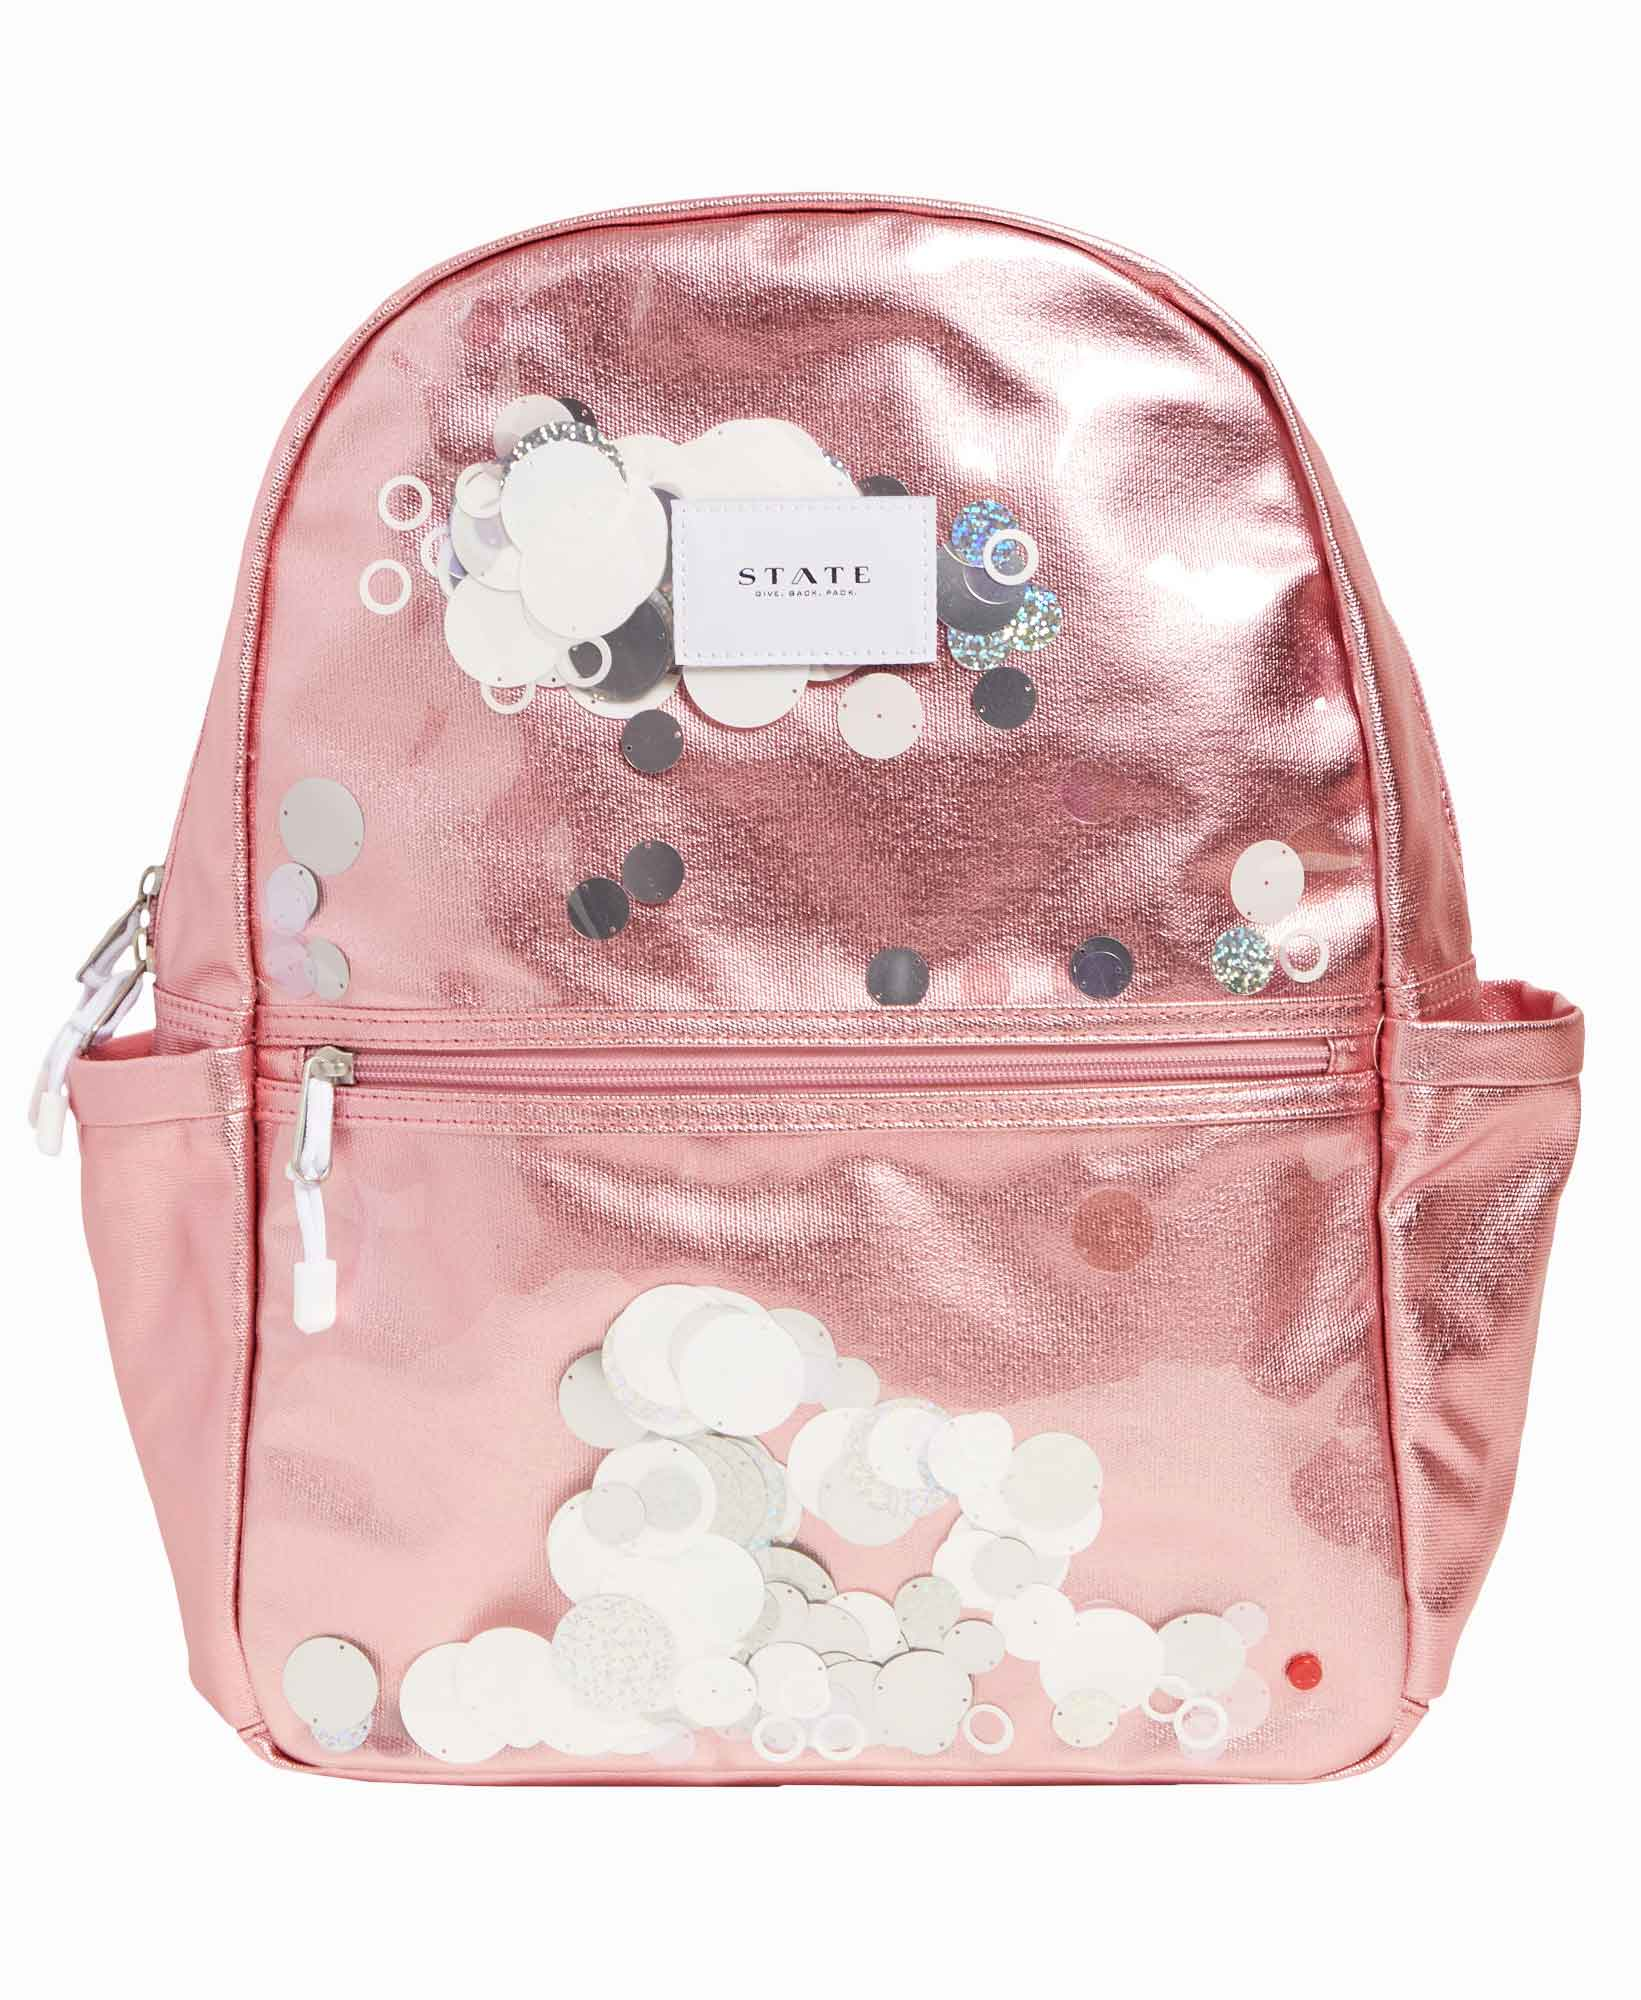 State Kane Metallic Sequins Backpack